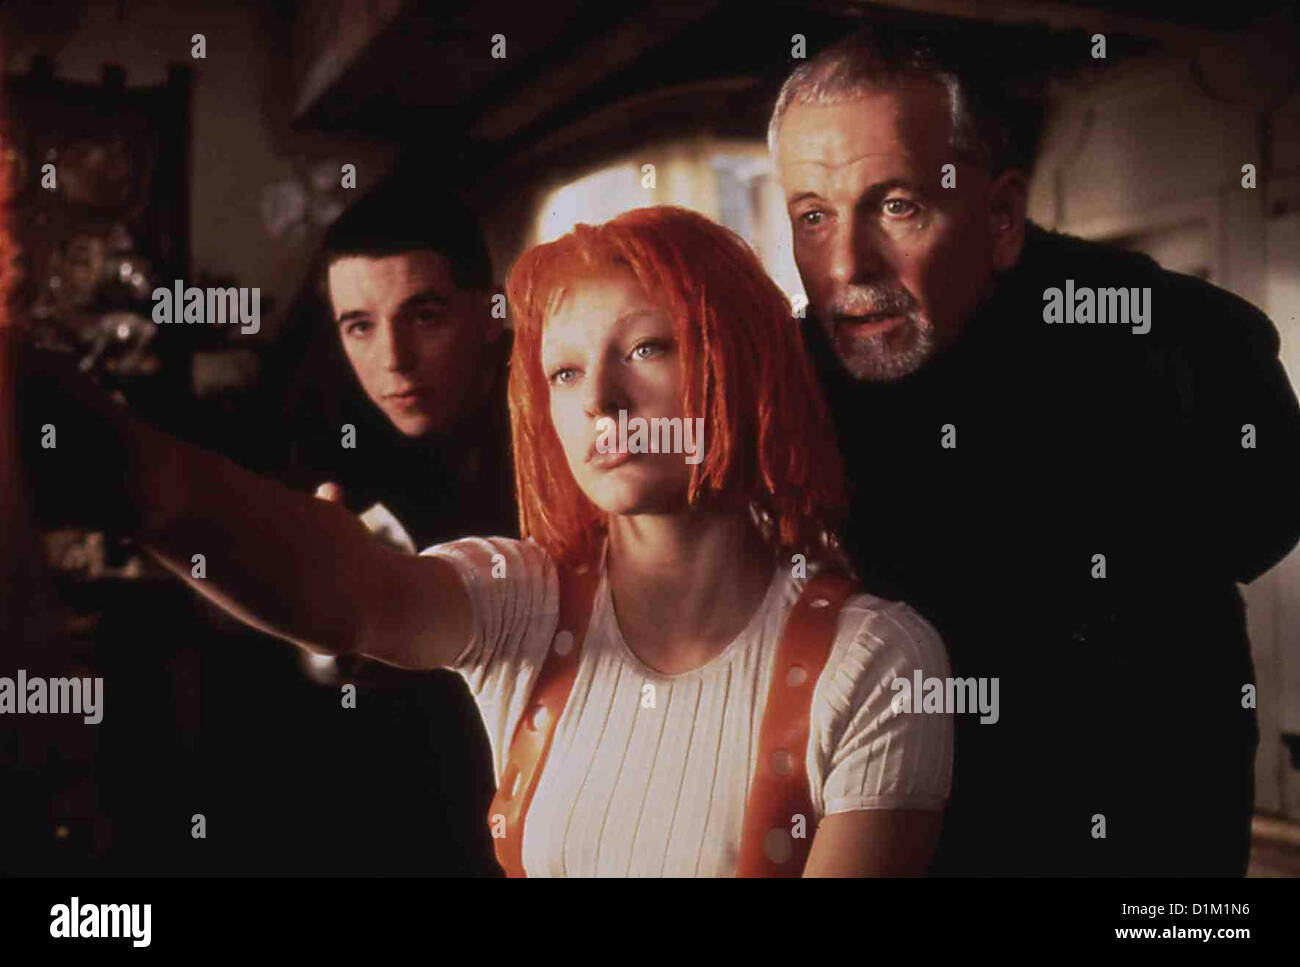 Das Fuenfte Element   Fifth Element, The   Charlie Creed Miles, Milla Jovovich, Ian Holm *** Local Caption *** 1997 - Stock Image